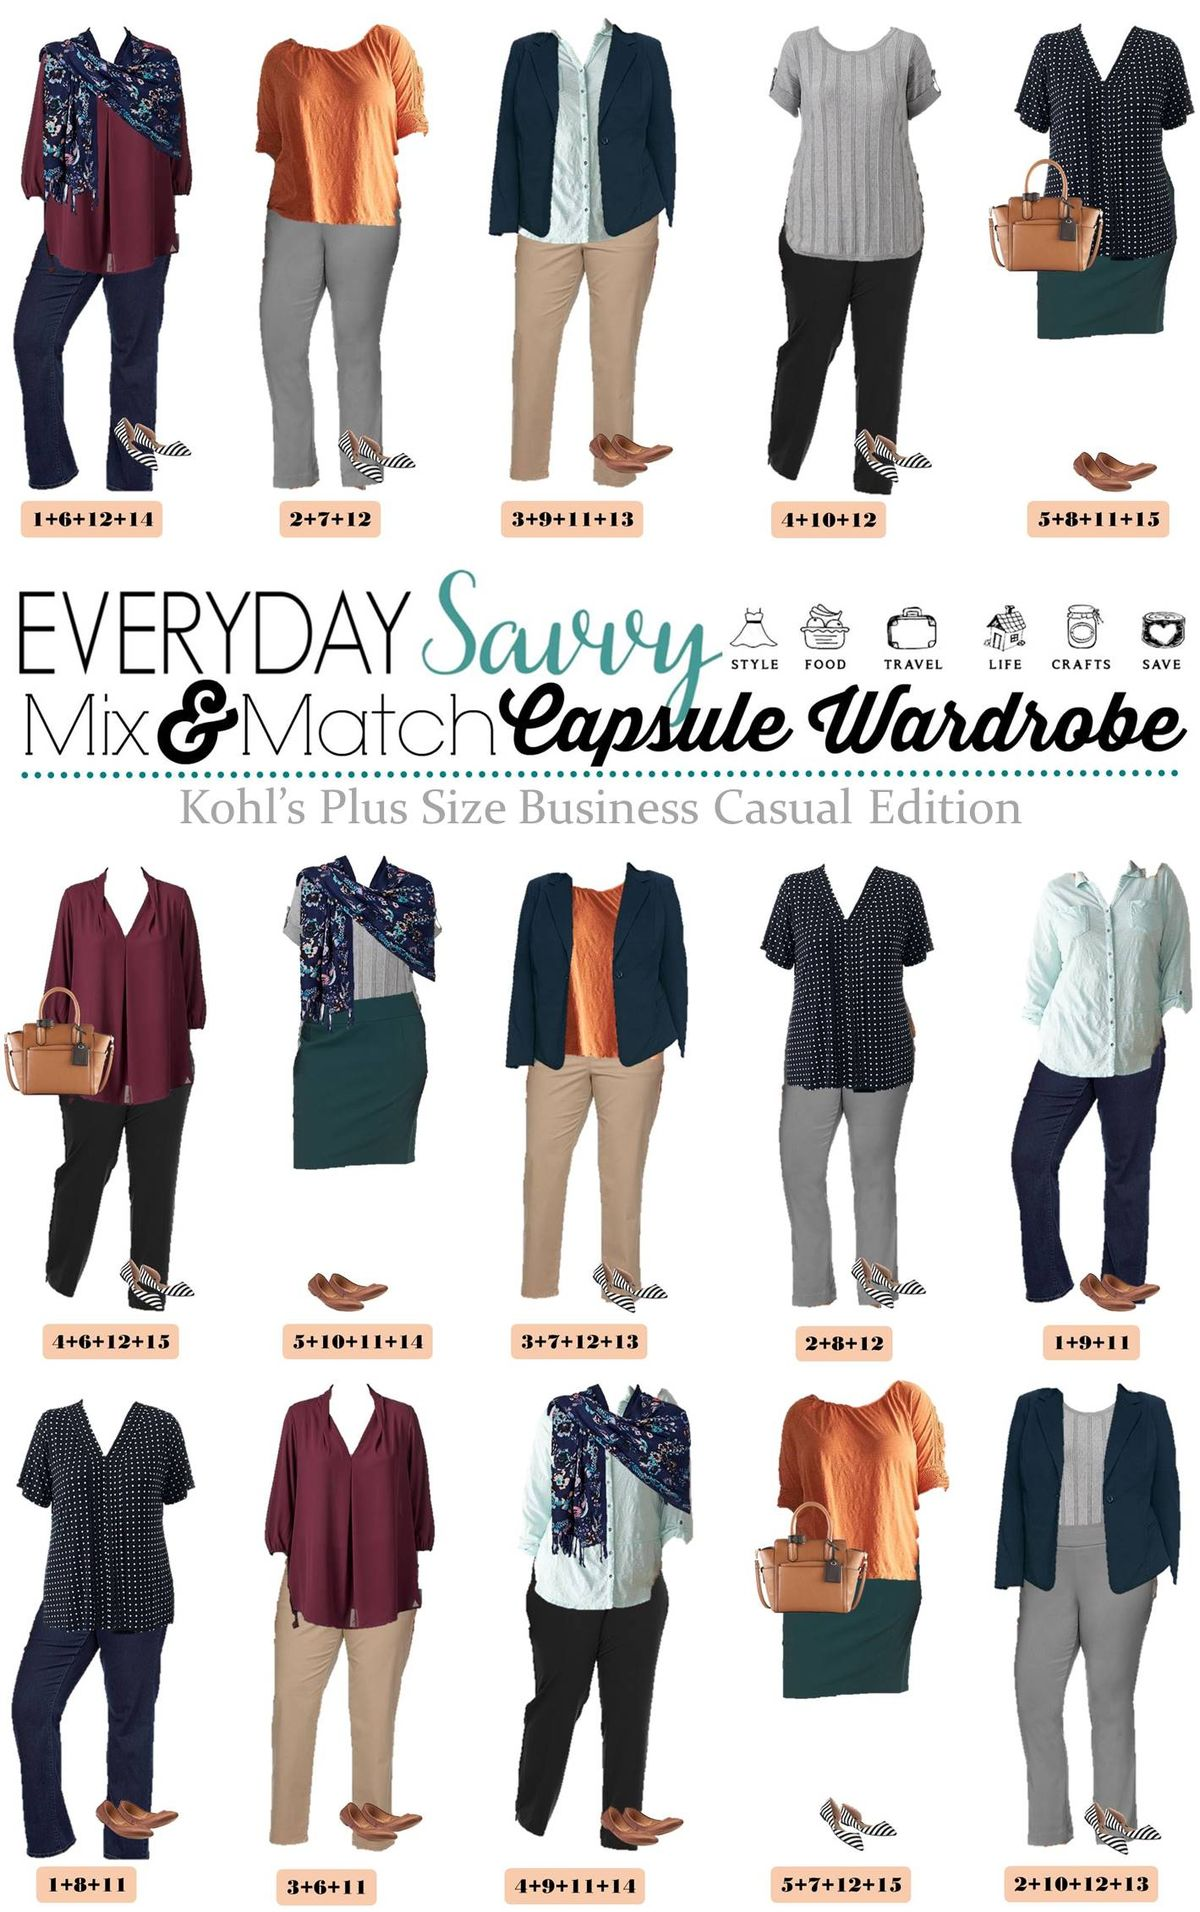 35 plus size fall outfits for moms that you can copy 5 - 35-plus-size-fall-outfits-for-moms-that-you-can-copy-5